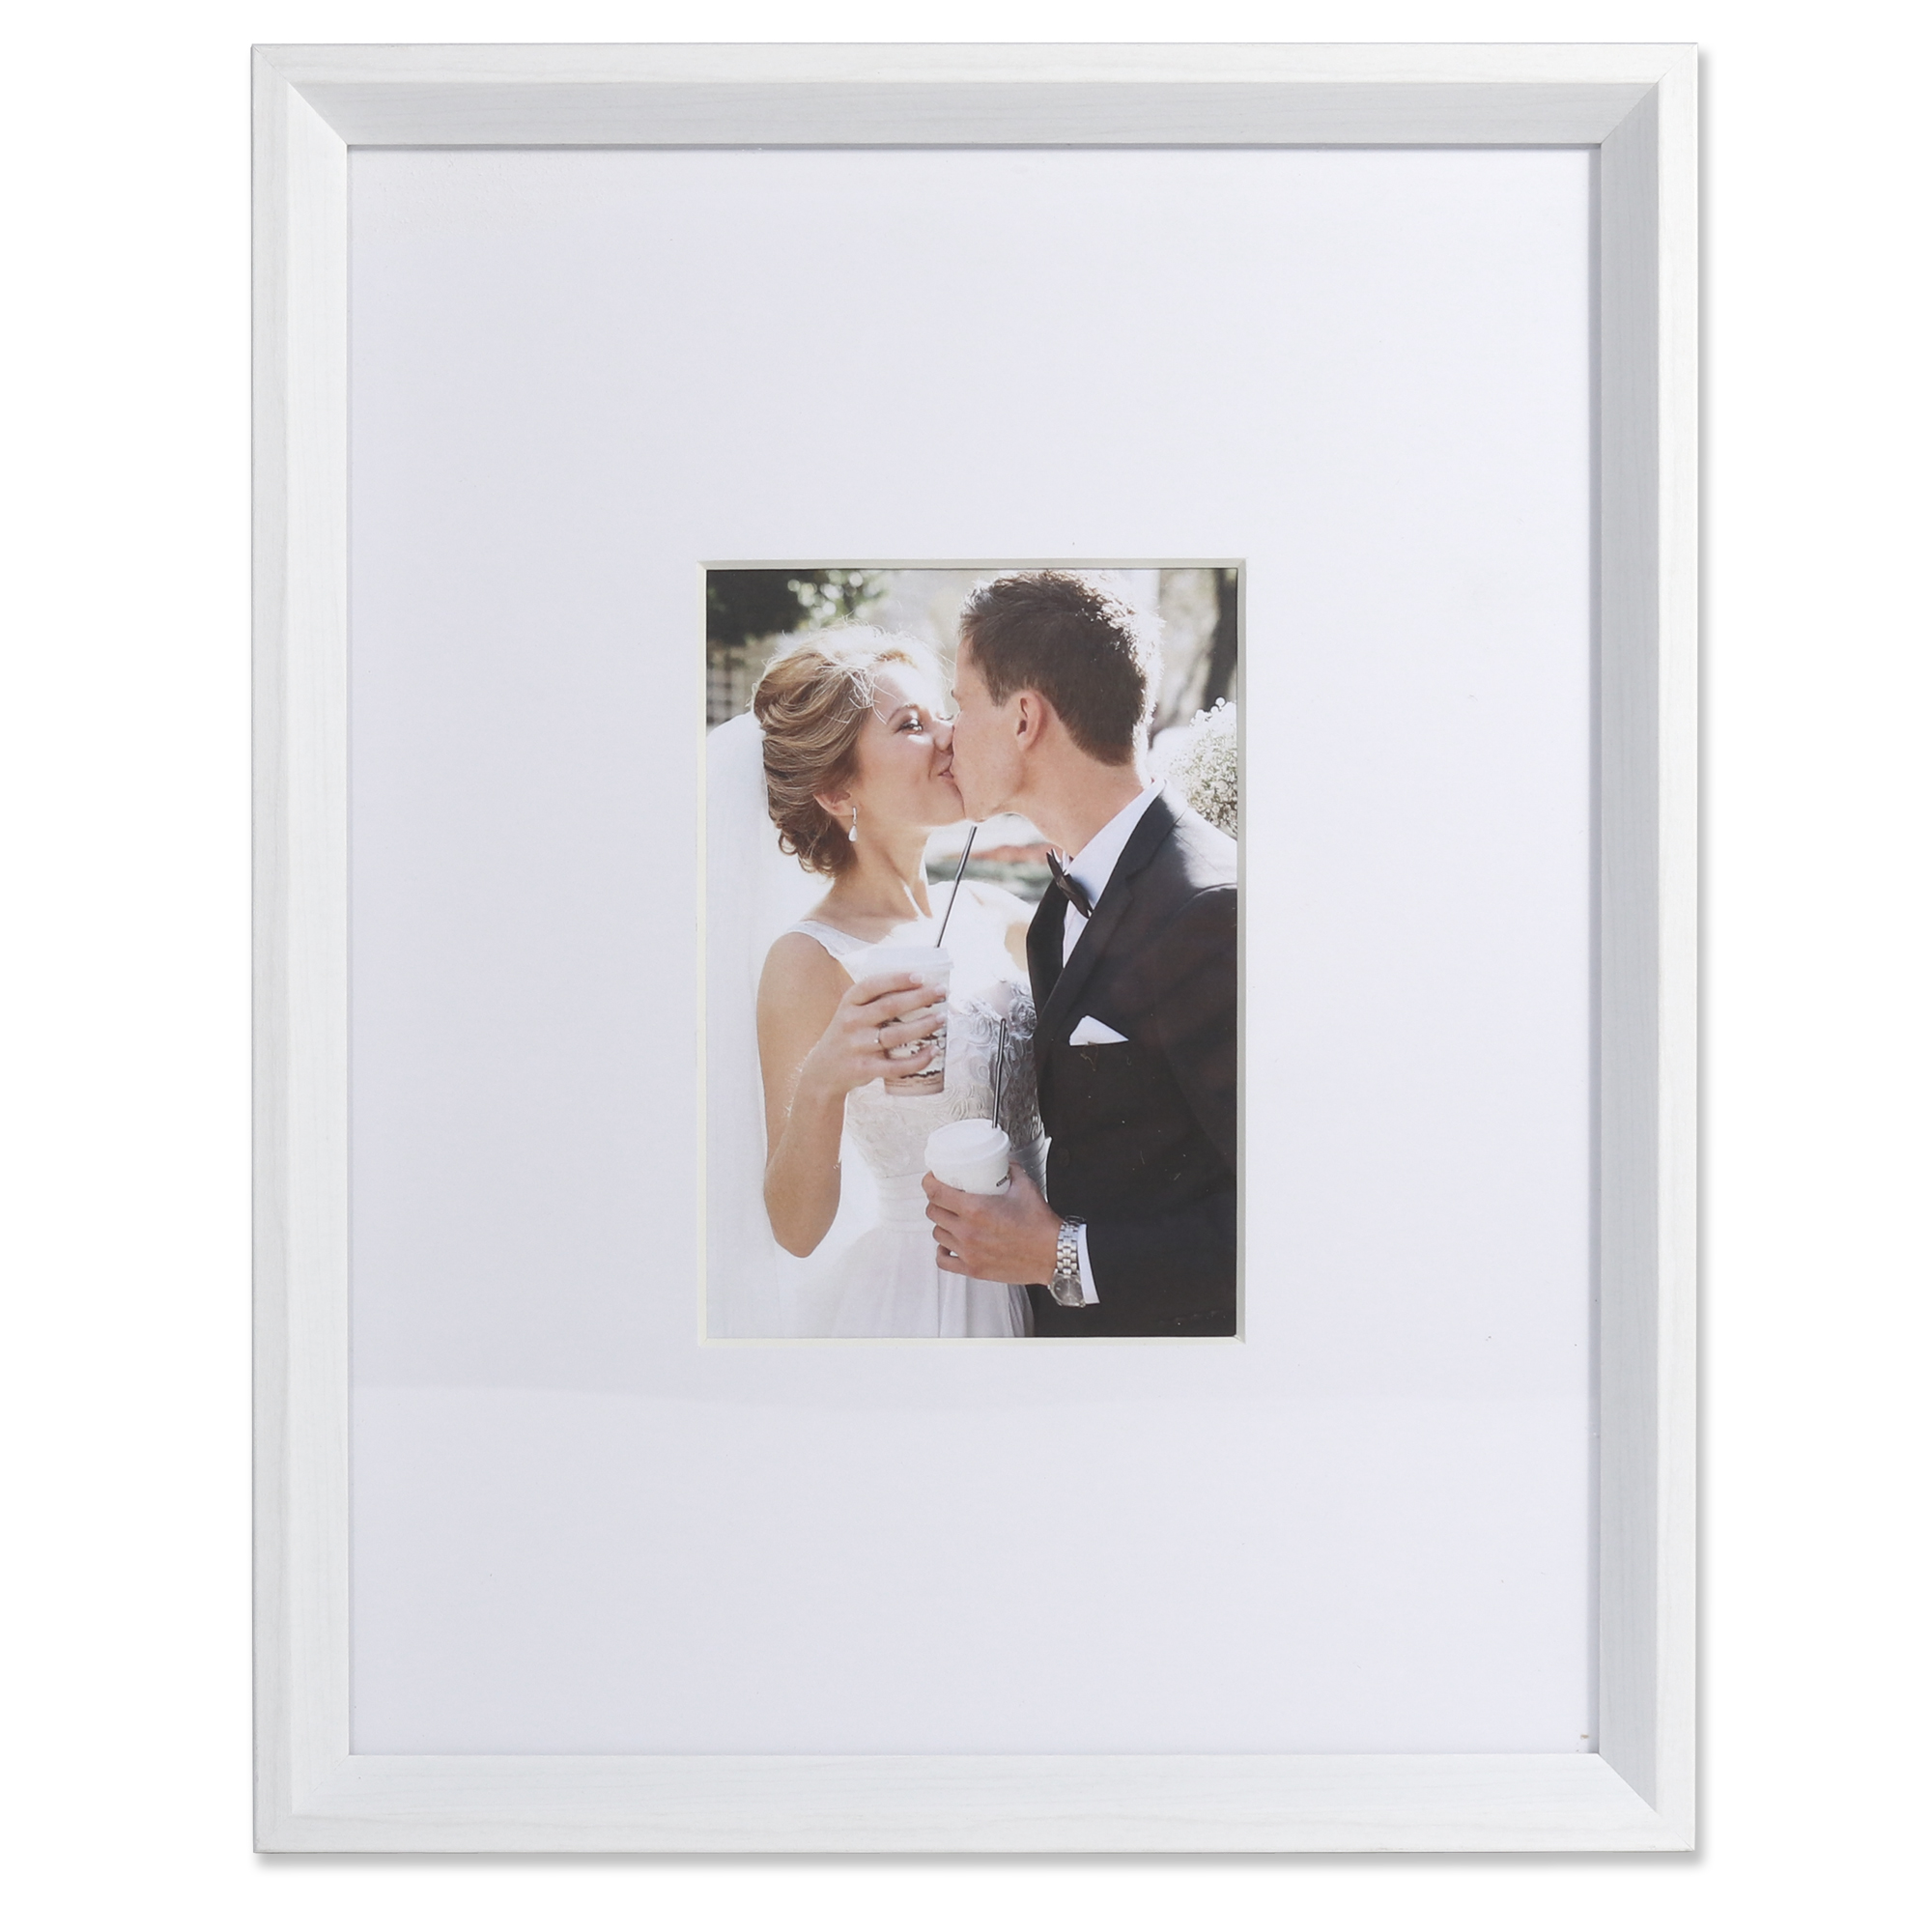 5x7 Wide Border Matted Frame Gallery White 11x14 Photoframesnet